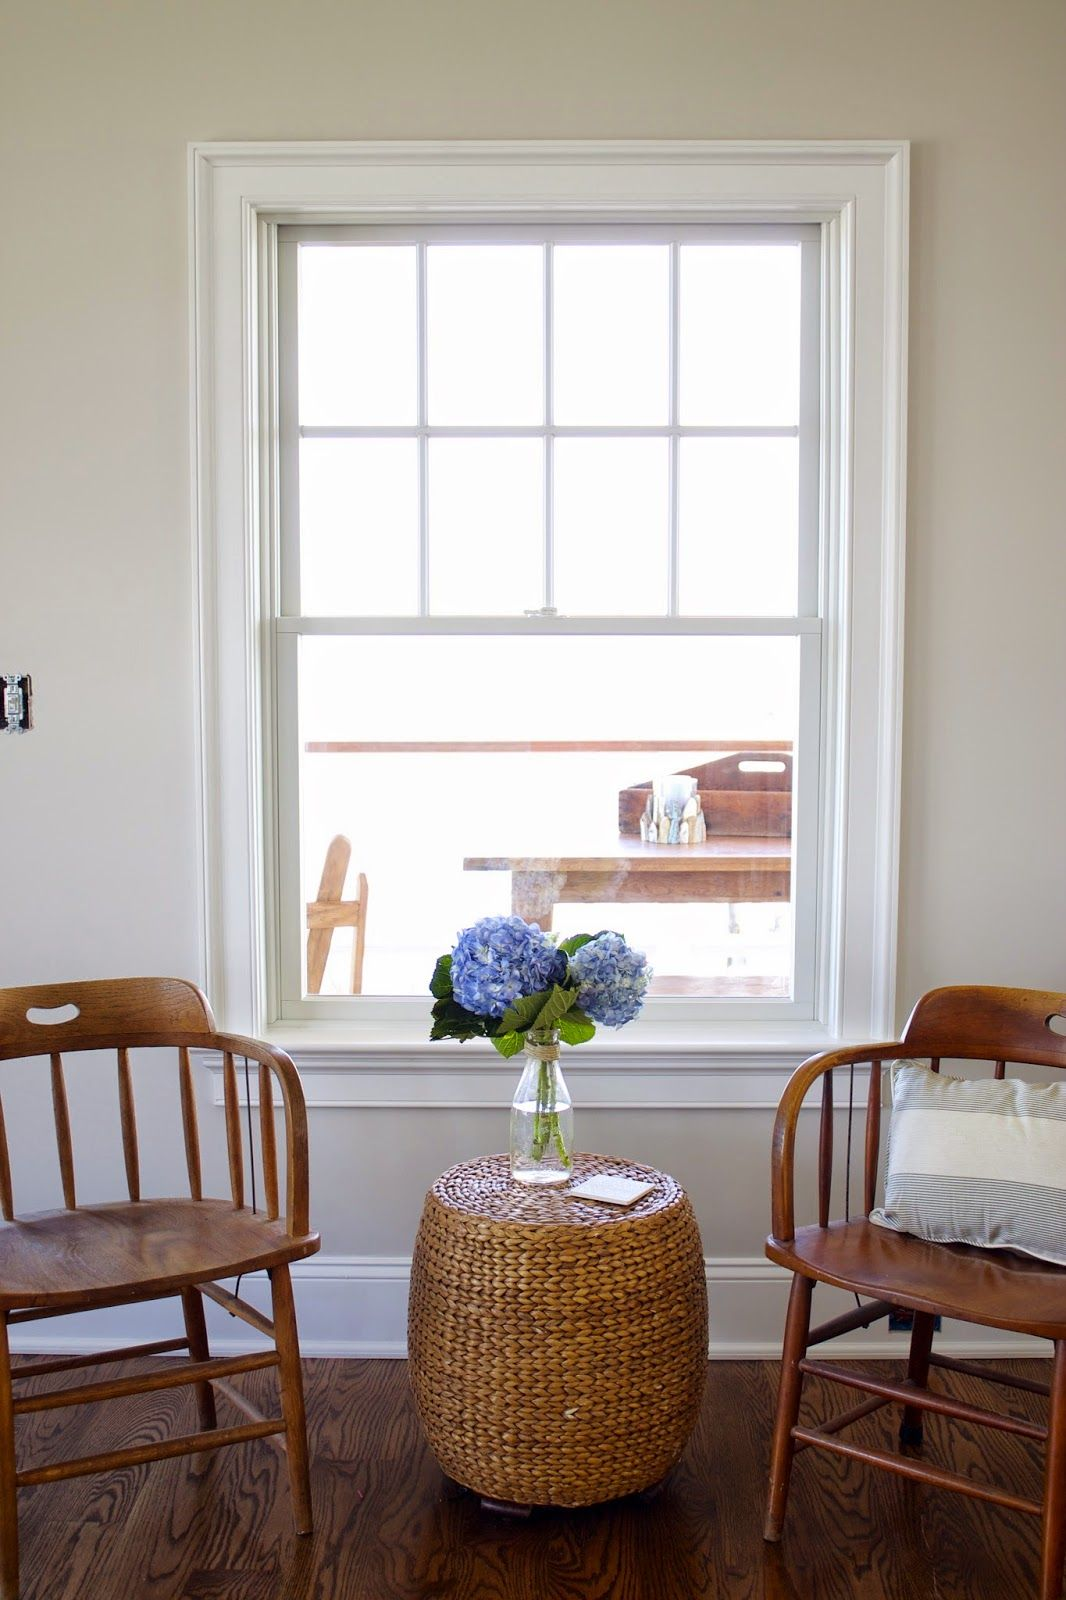 Paint Colors For Living Rooms With White Trim Modern Country Room Decor Ideas Benjamin Moore Pale Oak Walls Looks Great